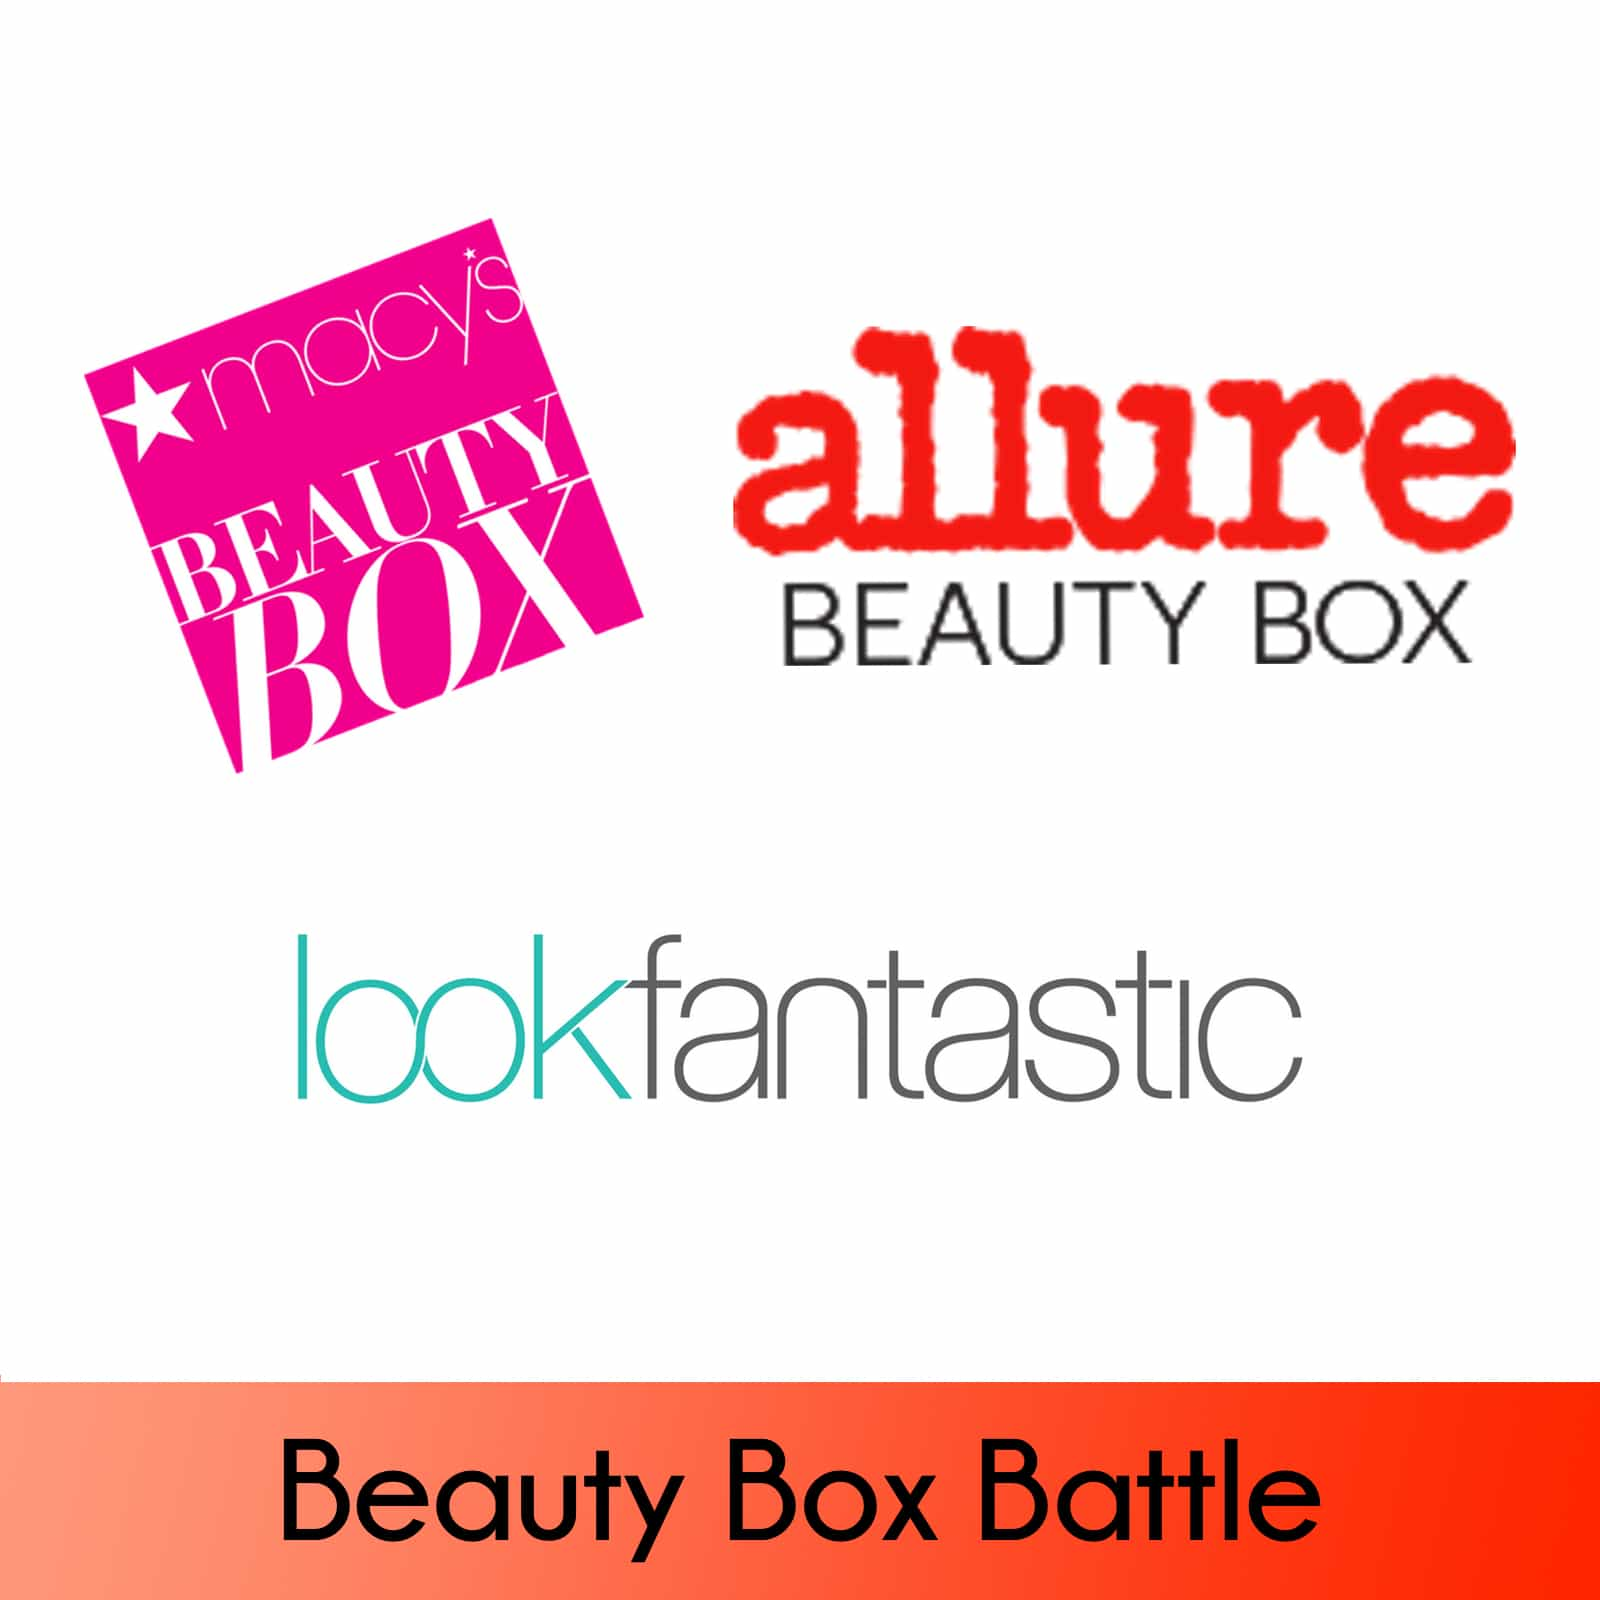 Macy's Beauty Box vs Allure Beauty Box vs Lookfantastic April 2018 $15 Beauty Boxes!